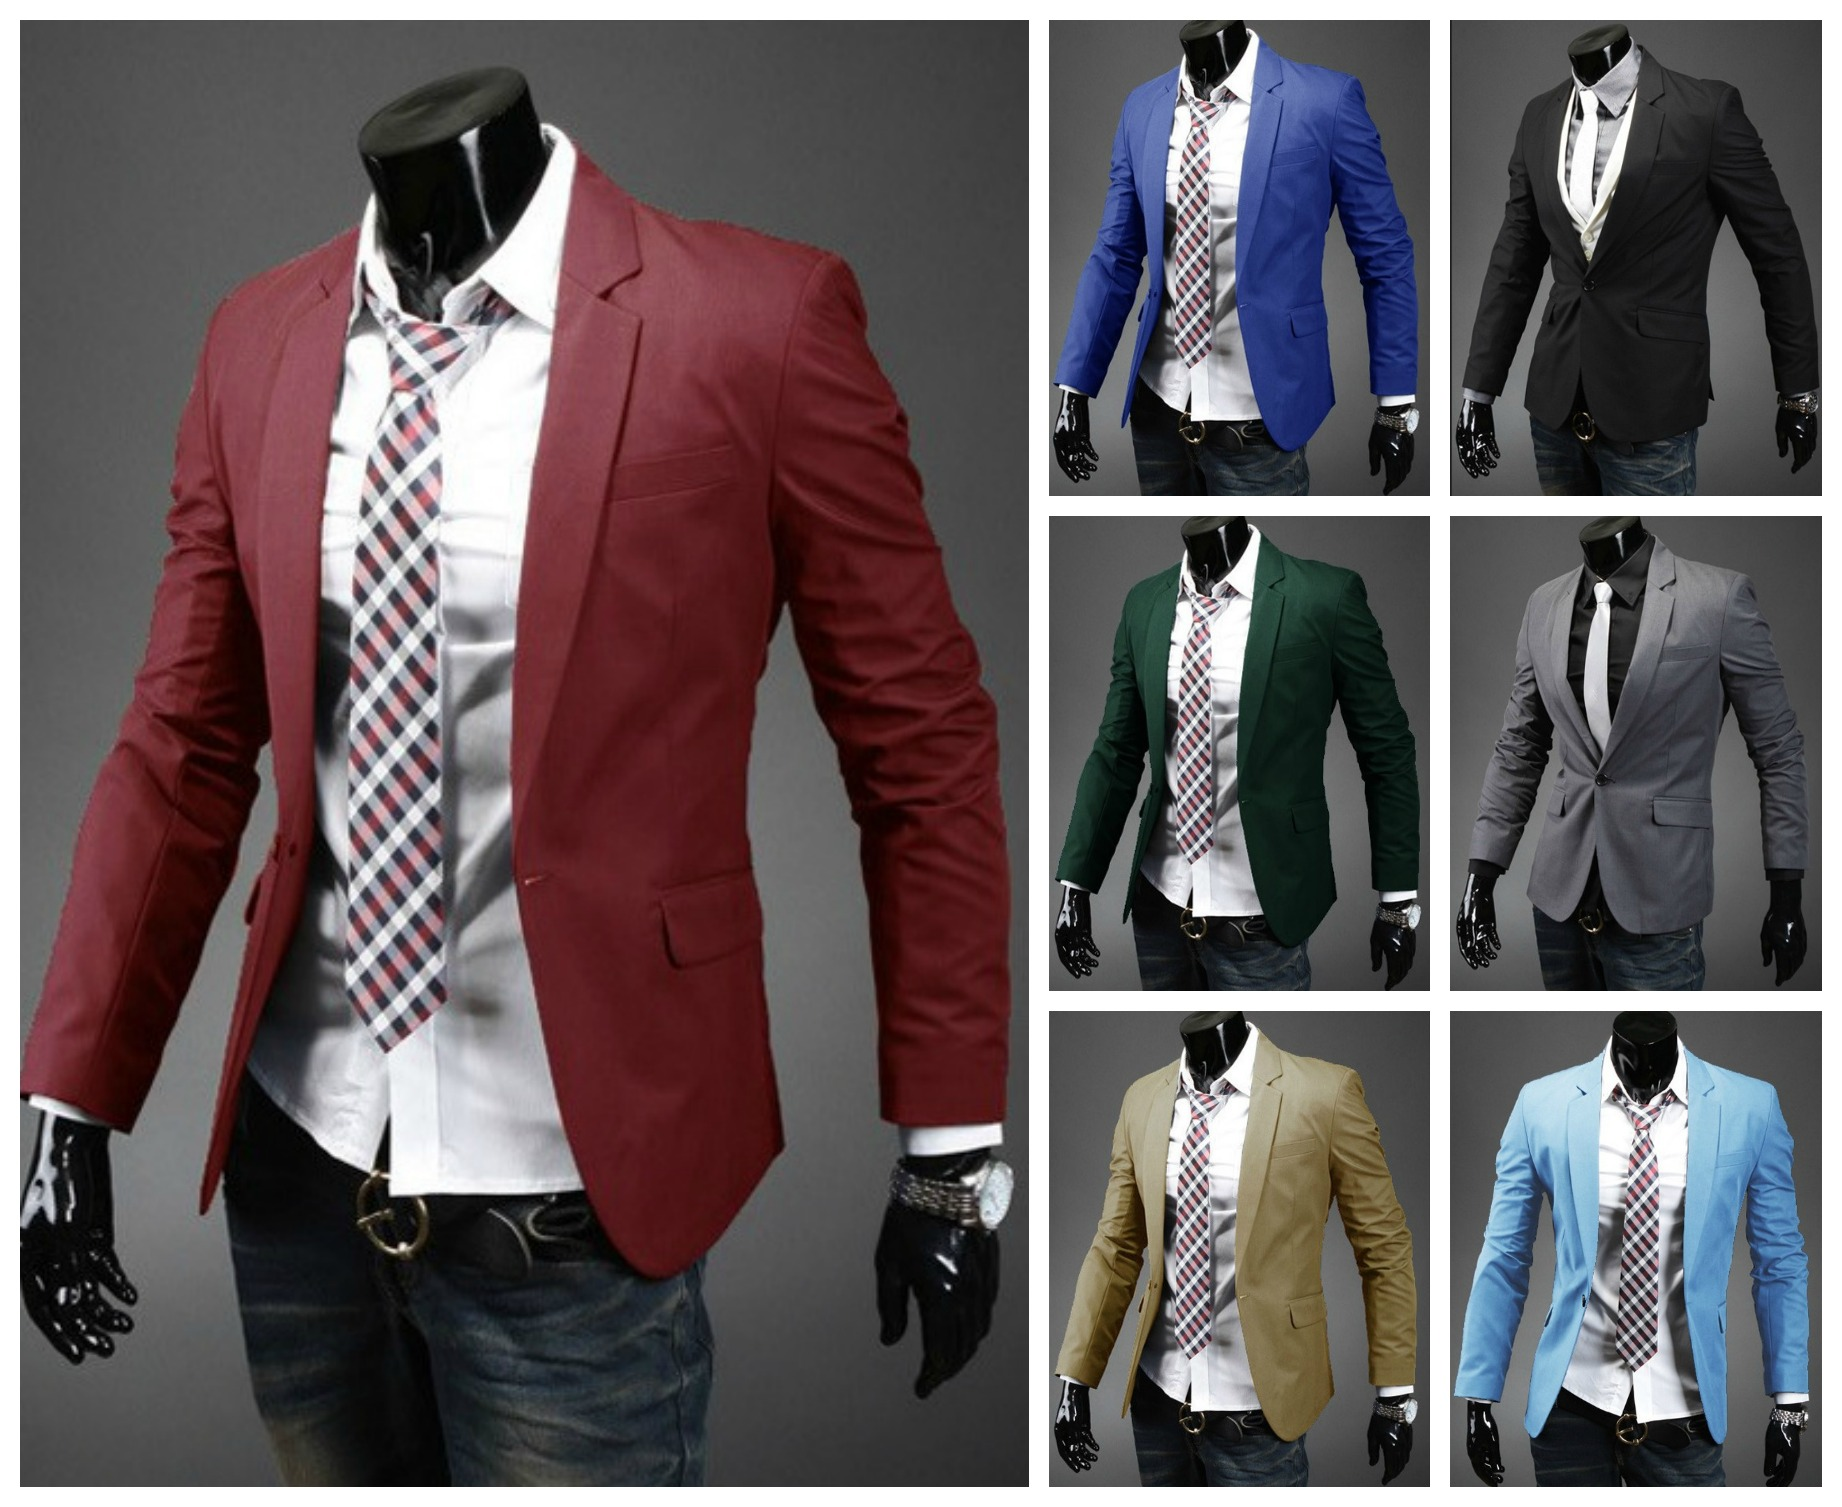 Elegant Modern Blazer One Button - Solid Color - in 7 Colors